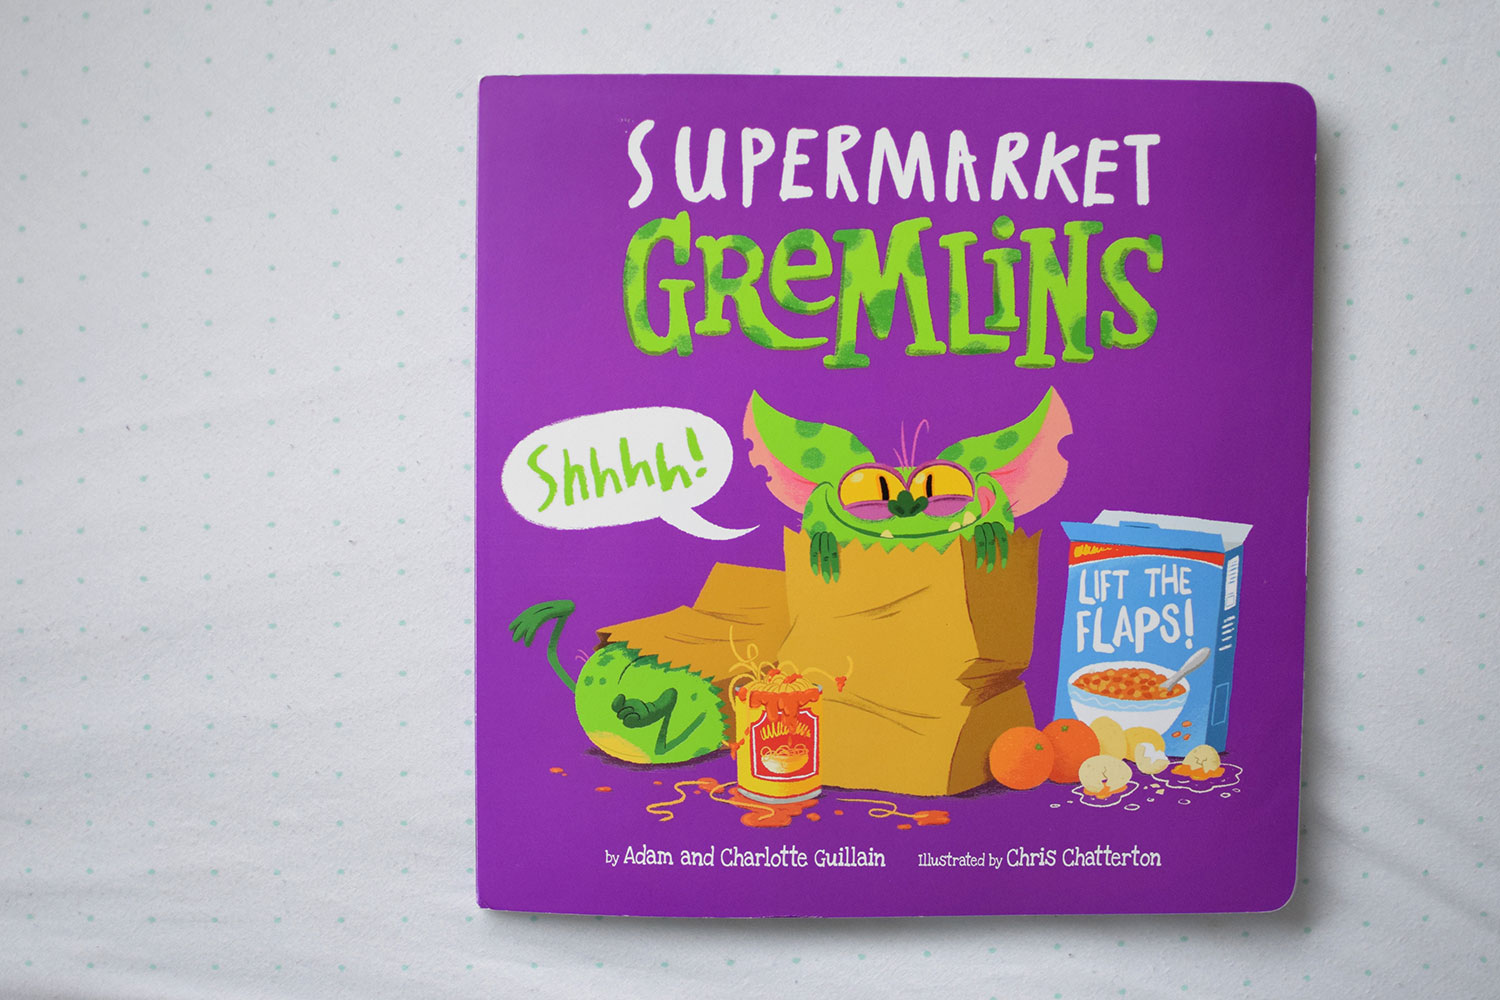 The Book You HAVE to Buy Your Toddler - Supermarket Gremlins by Adam and Charlotte Guillain, Egmont Publishing